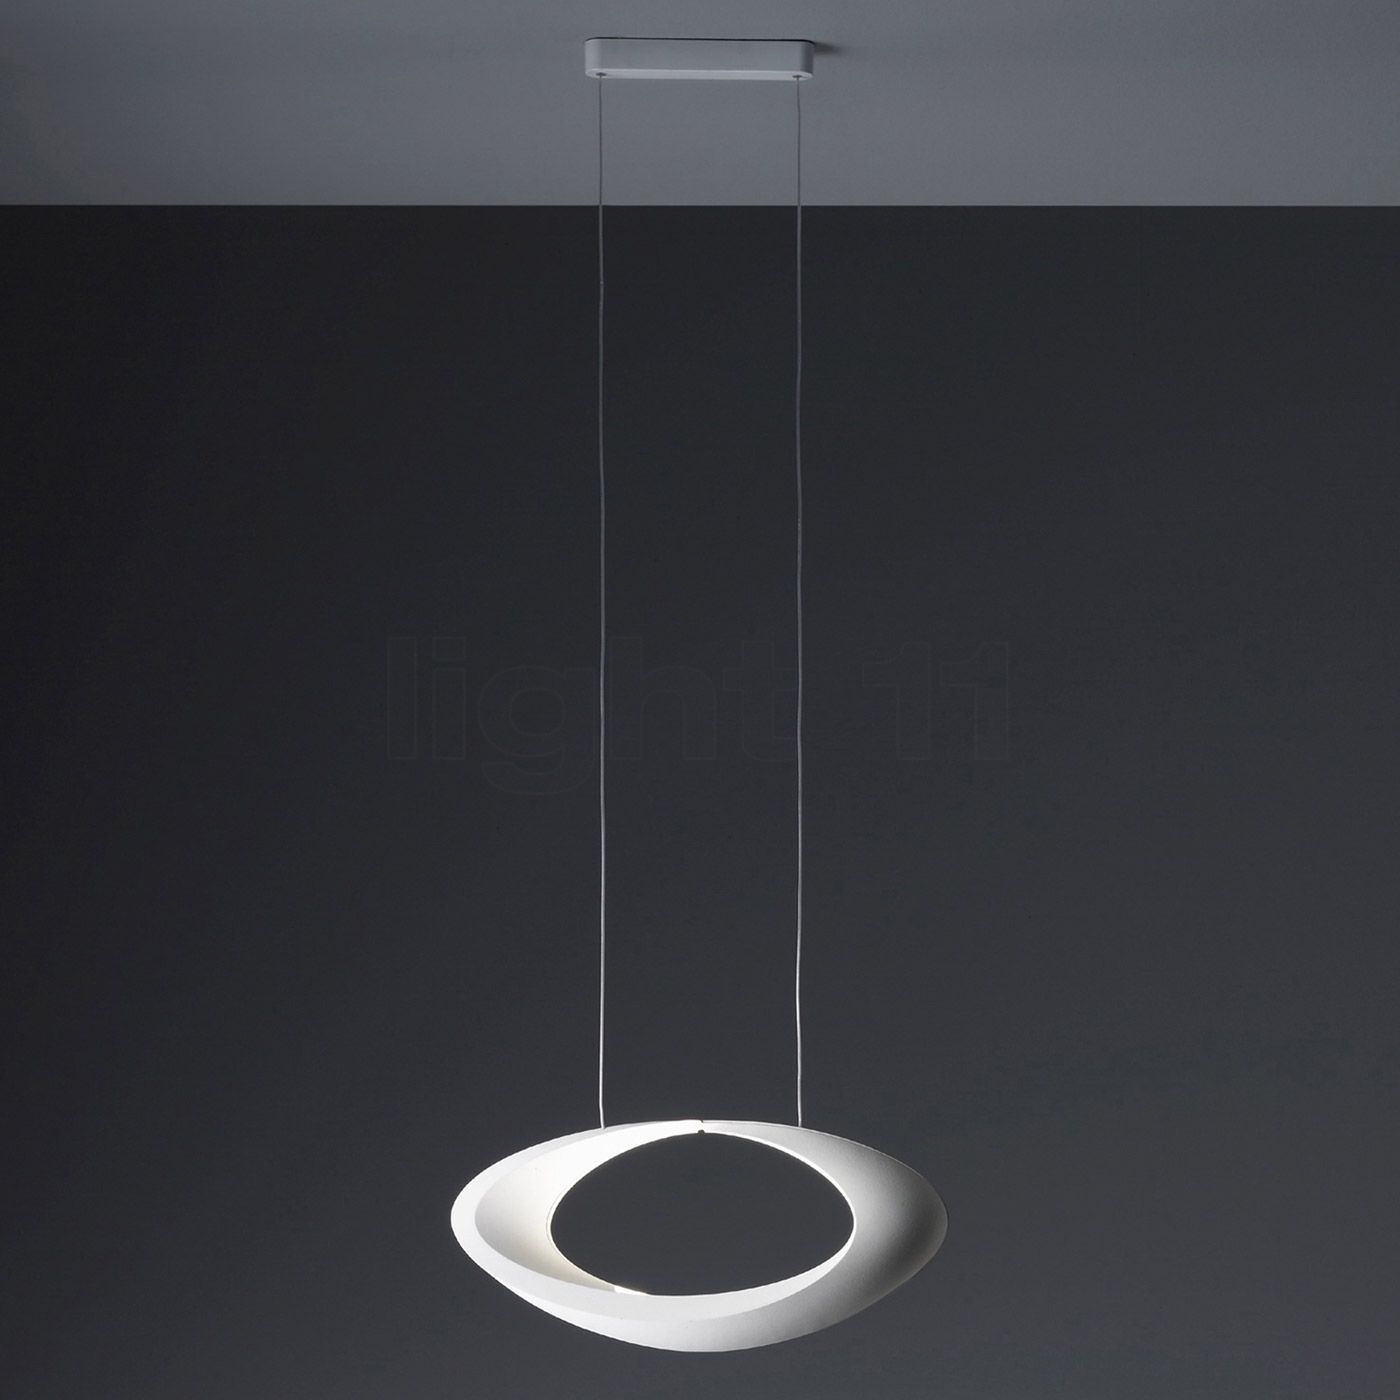 & Artemide Cabildo Sospensione Pendant lights - light11.eu azcodes.com